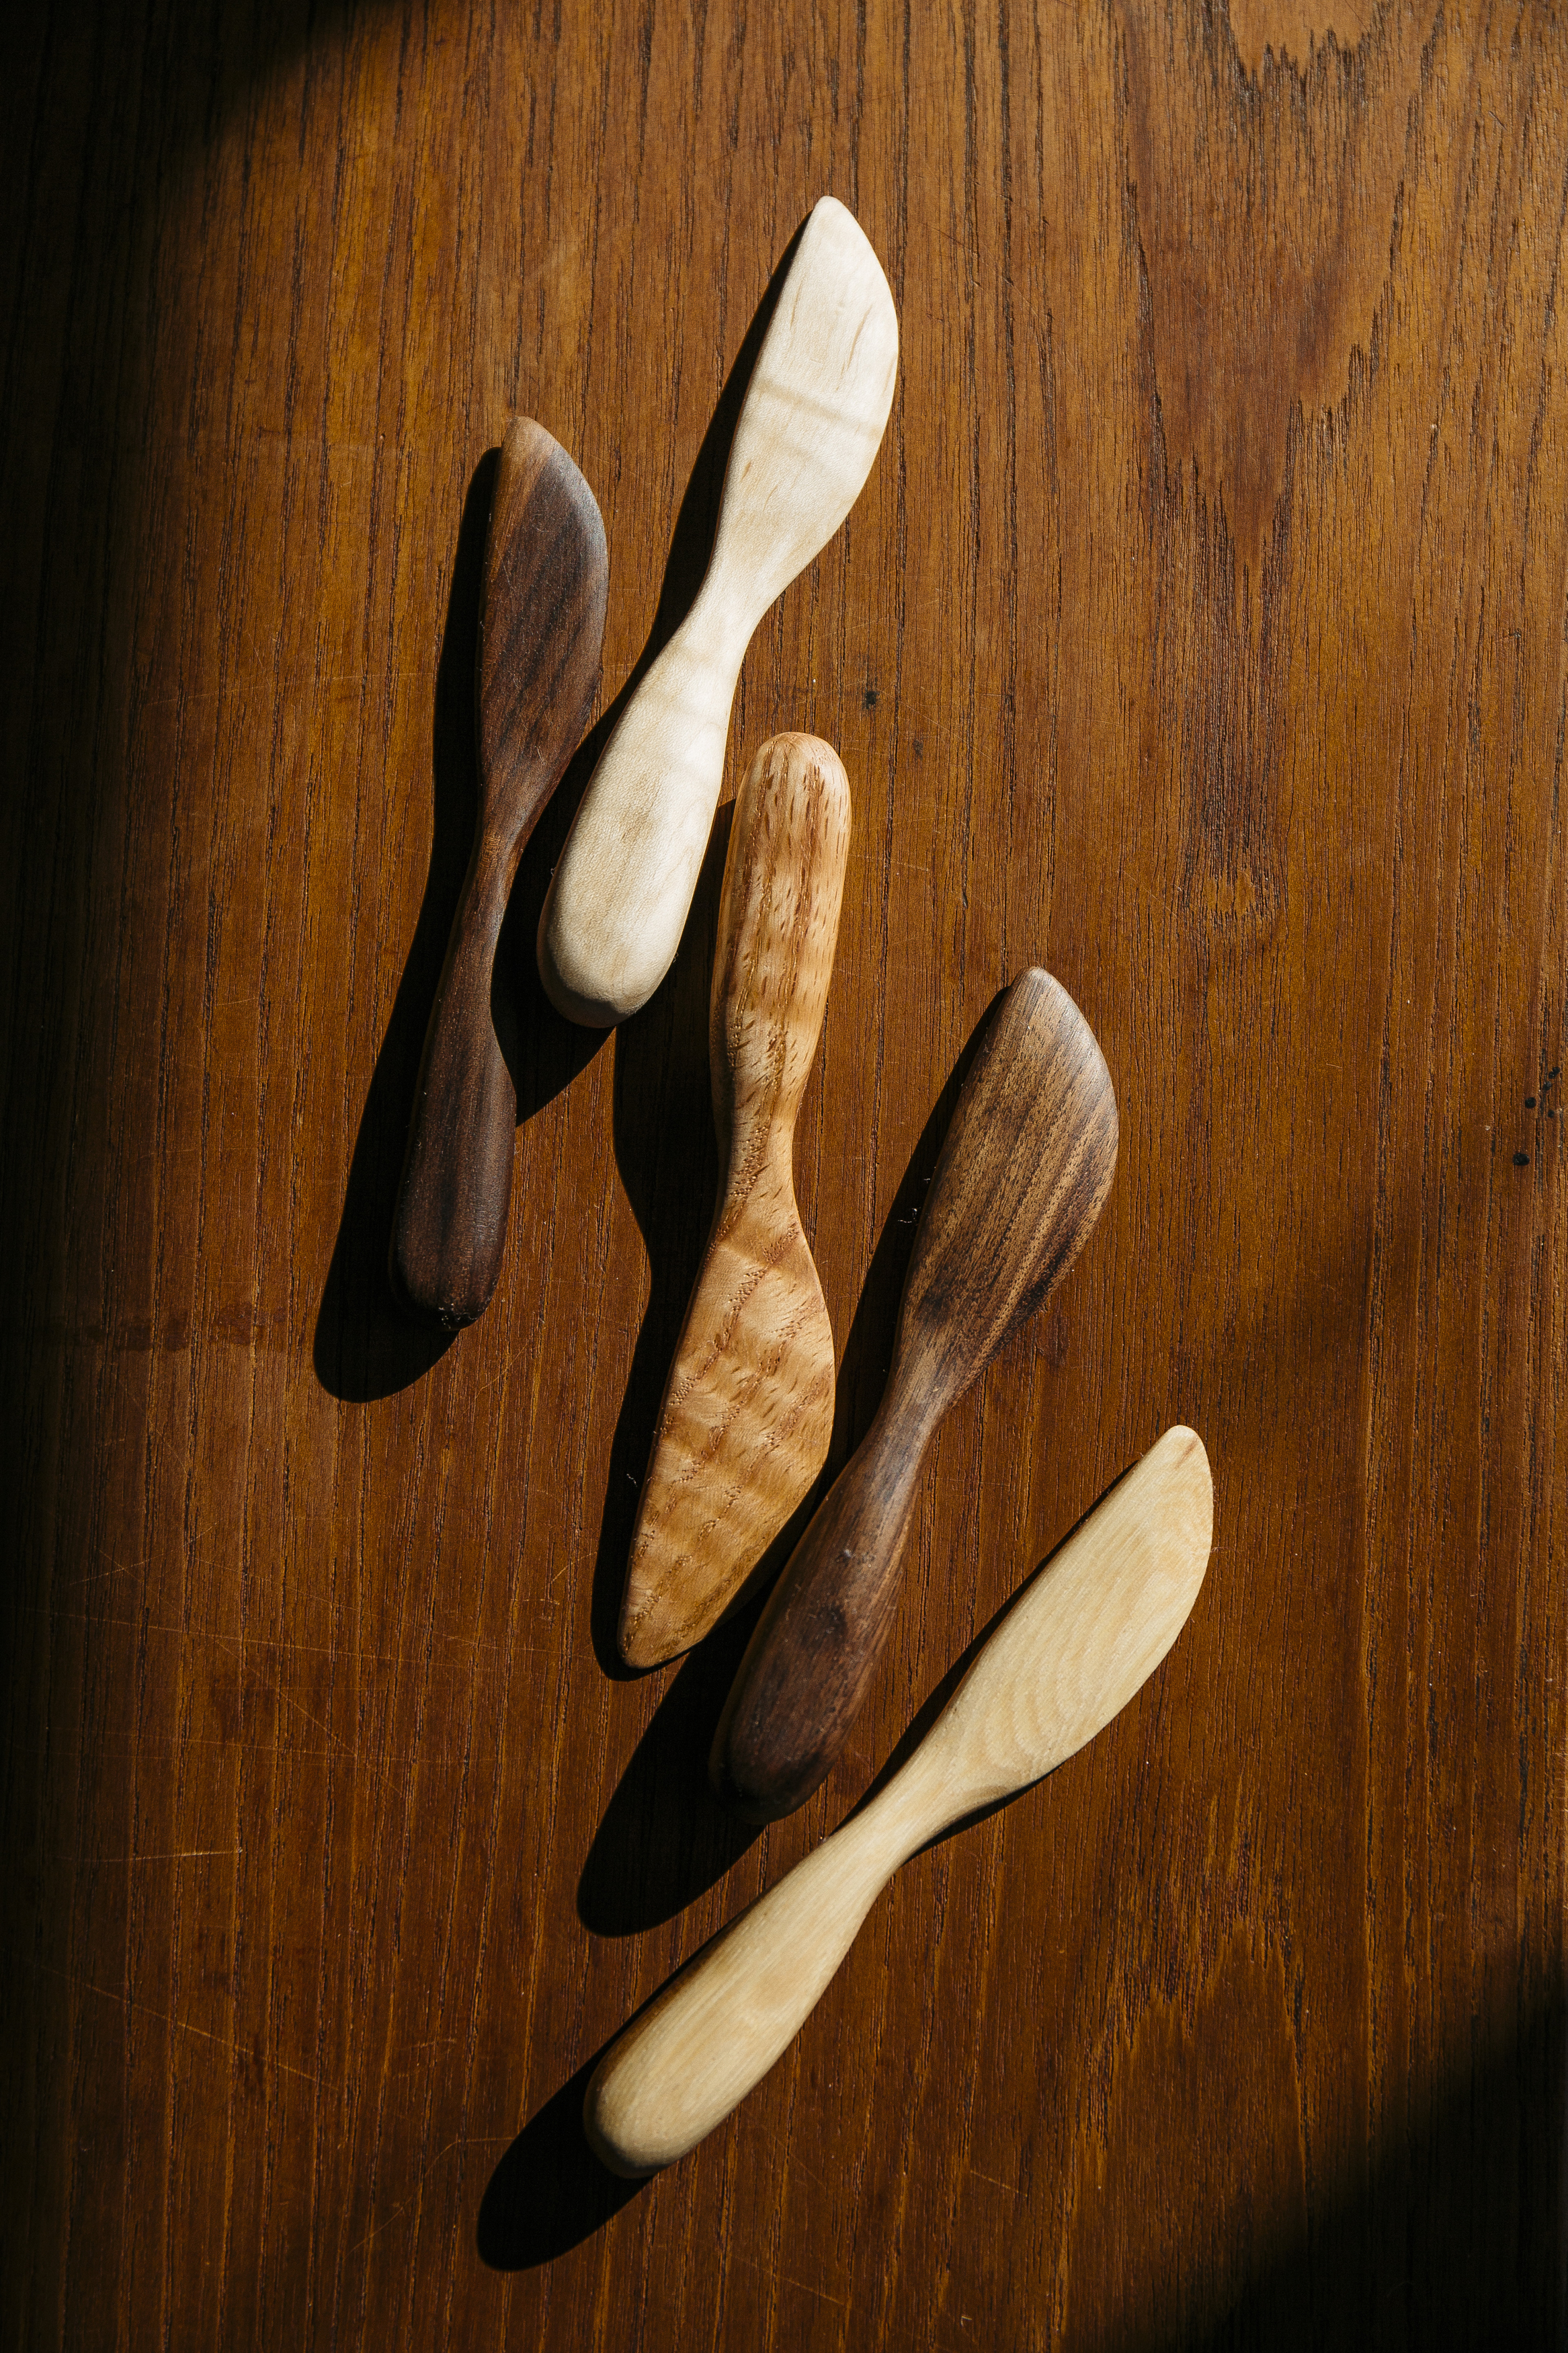 Boreal Design Co.  spreaders in walnut, oak and curly maple.